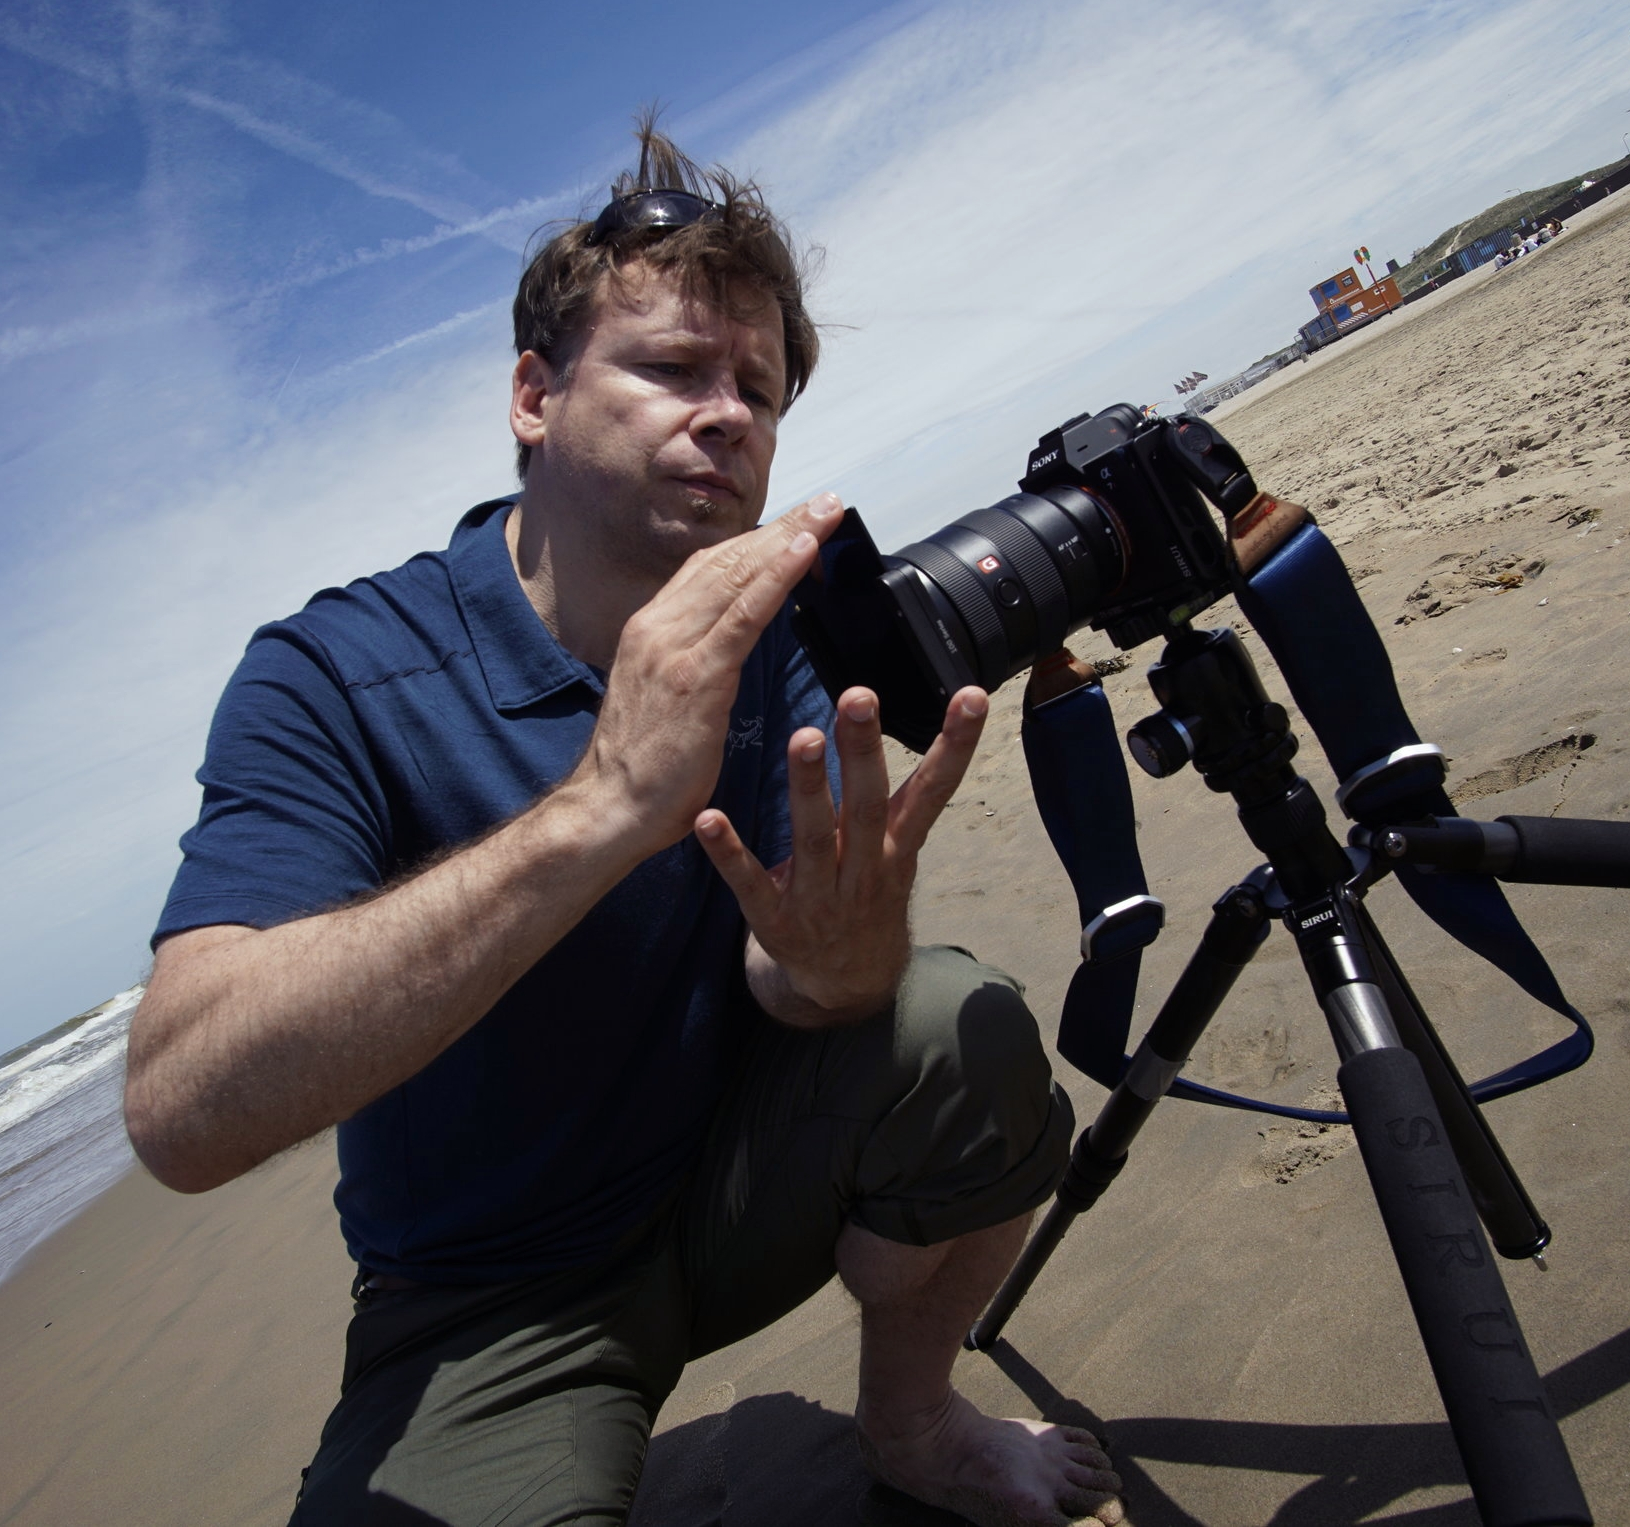 working with Haida filters at the beach of Scheveningen, Netherlands